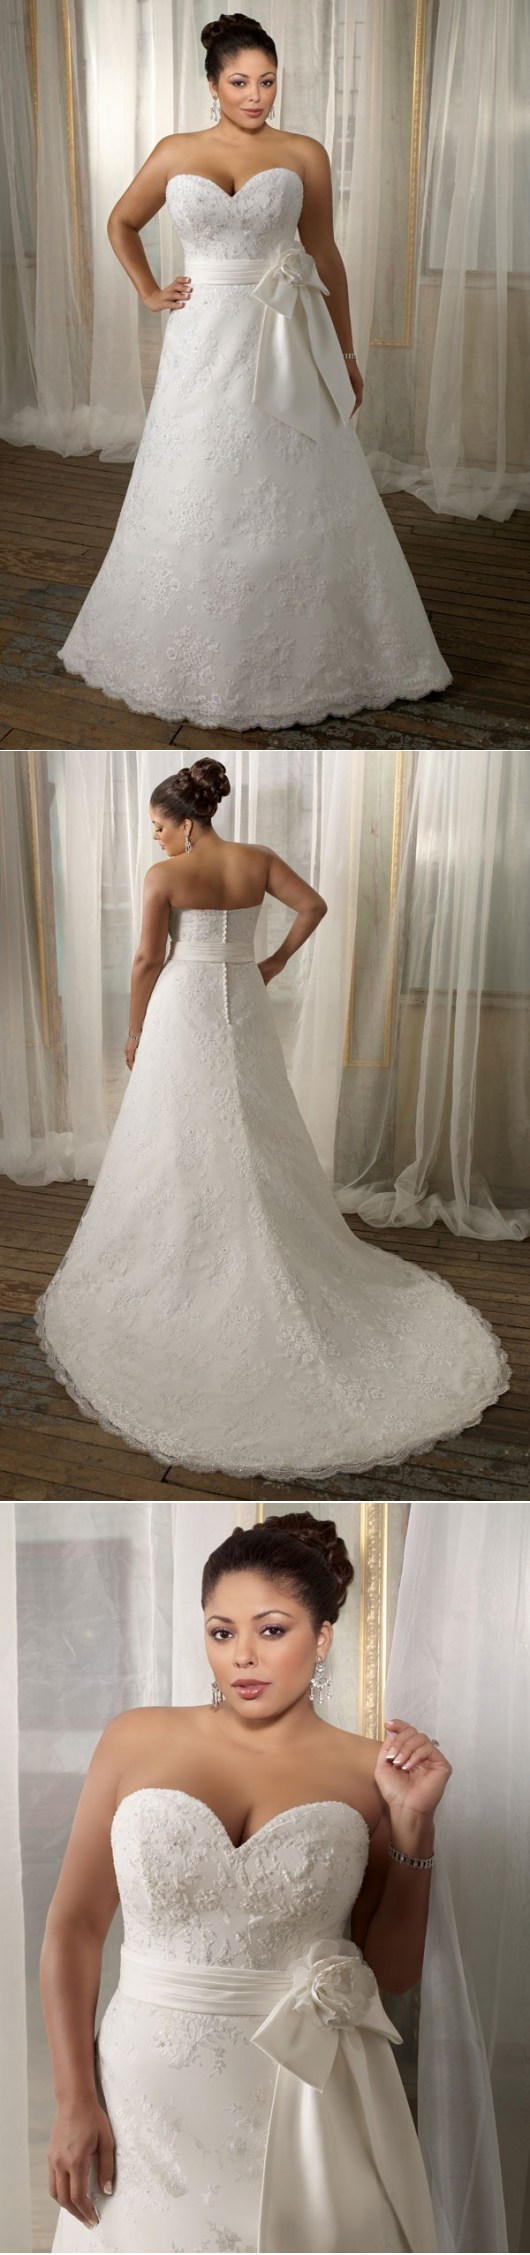 Sun Dresses For One Wedding Weddings Gown Vow Renewal Dresses ...